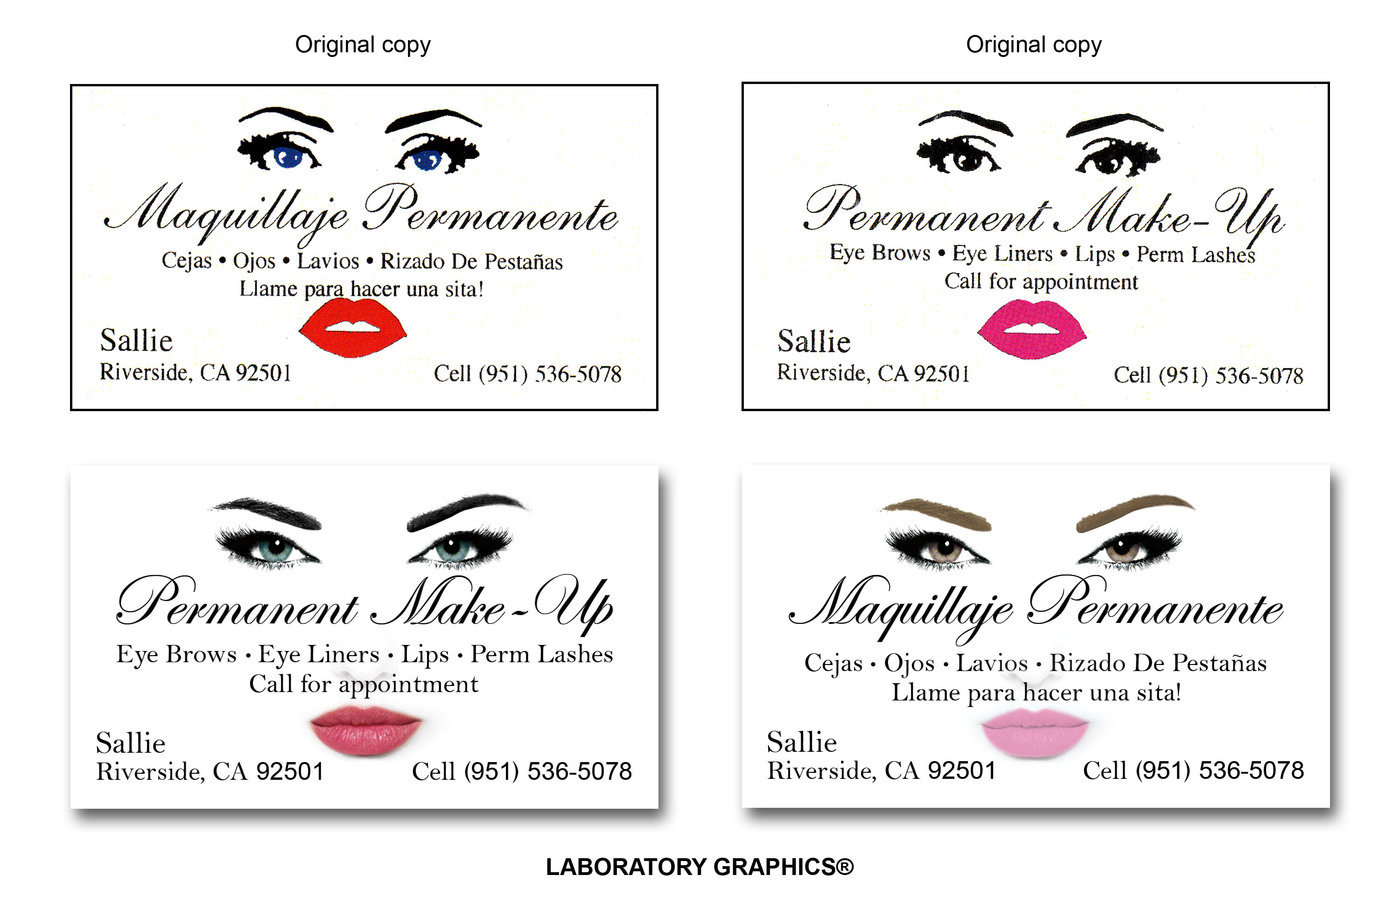 Business cards by johnny mar at coroflot permanent make up business card this is a recreation of the companys original business card remade with realistic facial features magicingreecefo Image collections